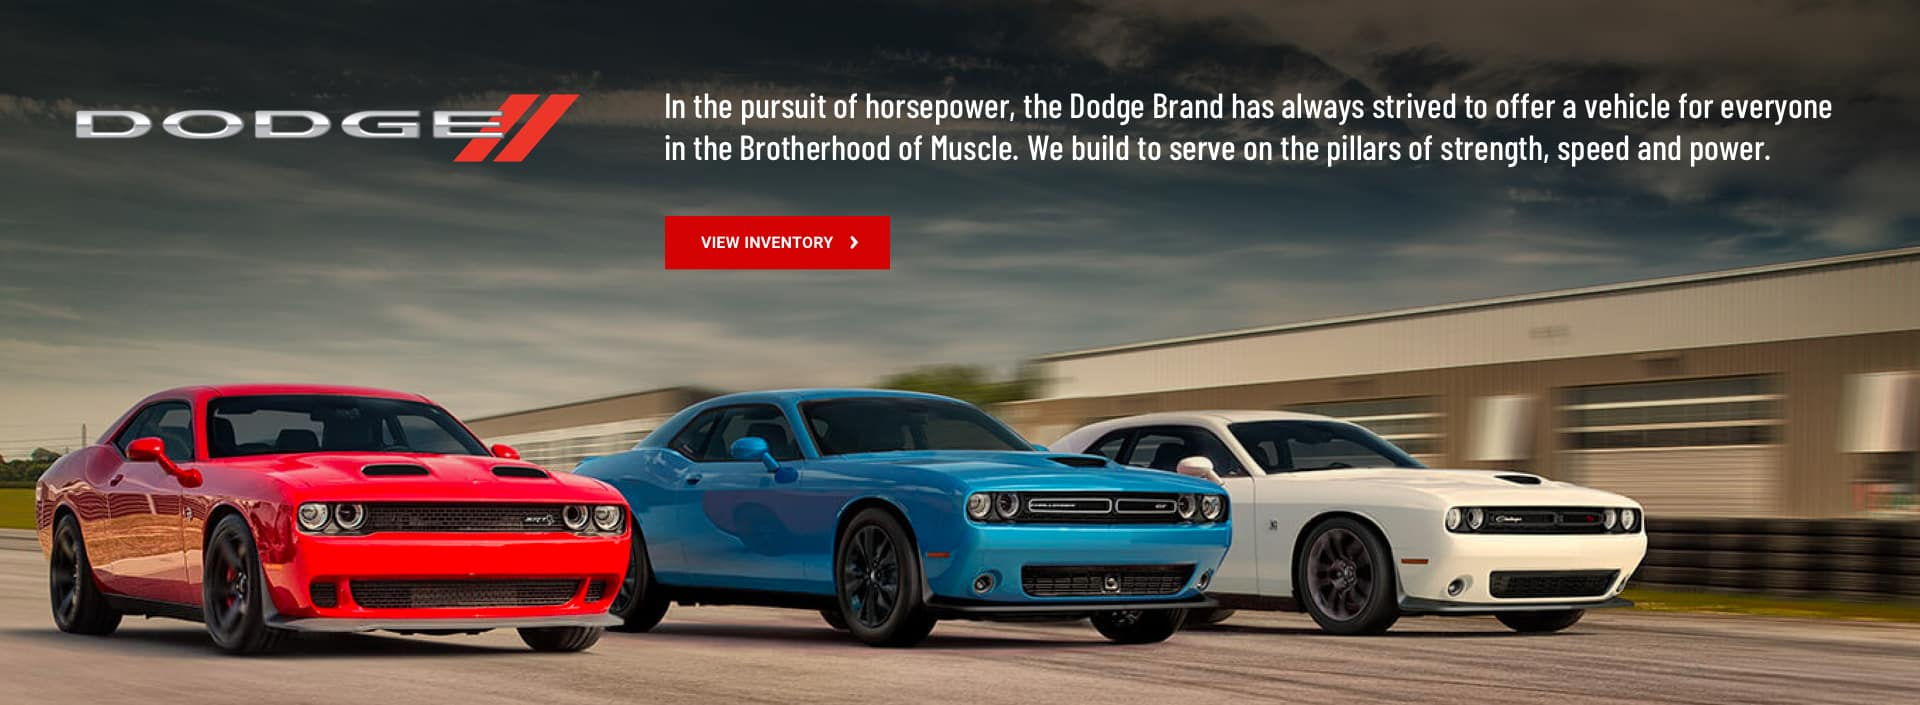 Dodge Chargers racing